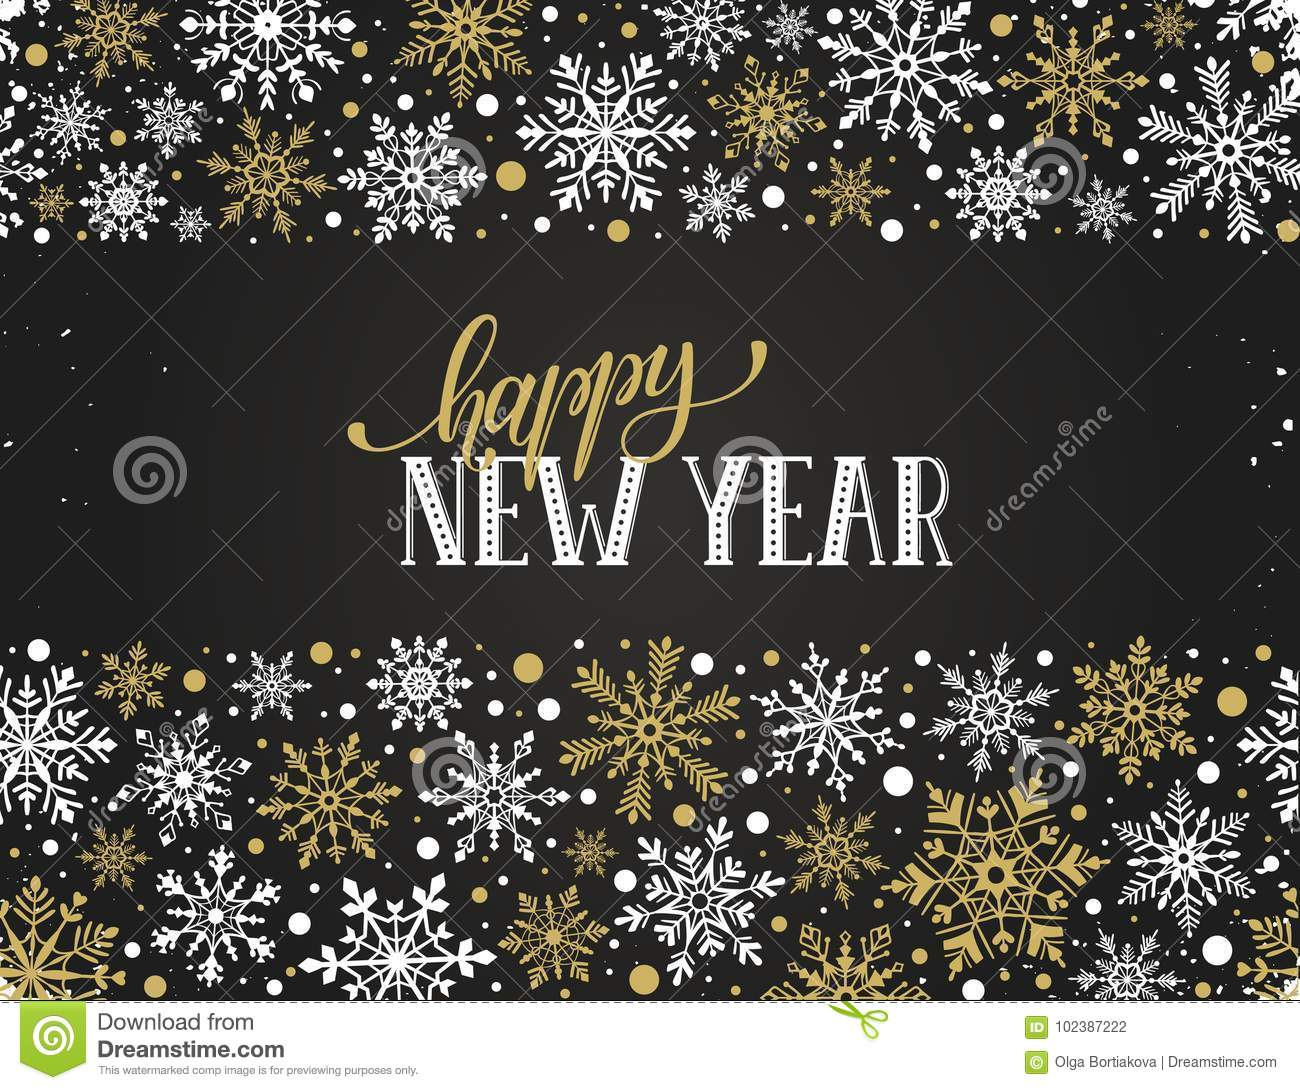 merry christmas illustration happy new year greeting card template modern winter lettering snowflakes horizontal frame 102387222jpg